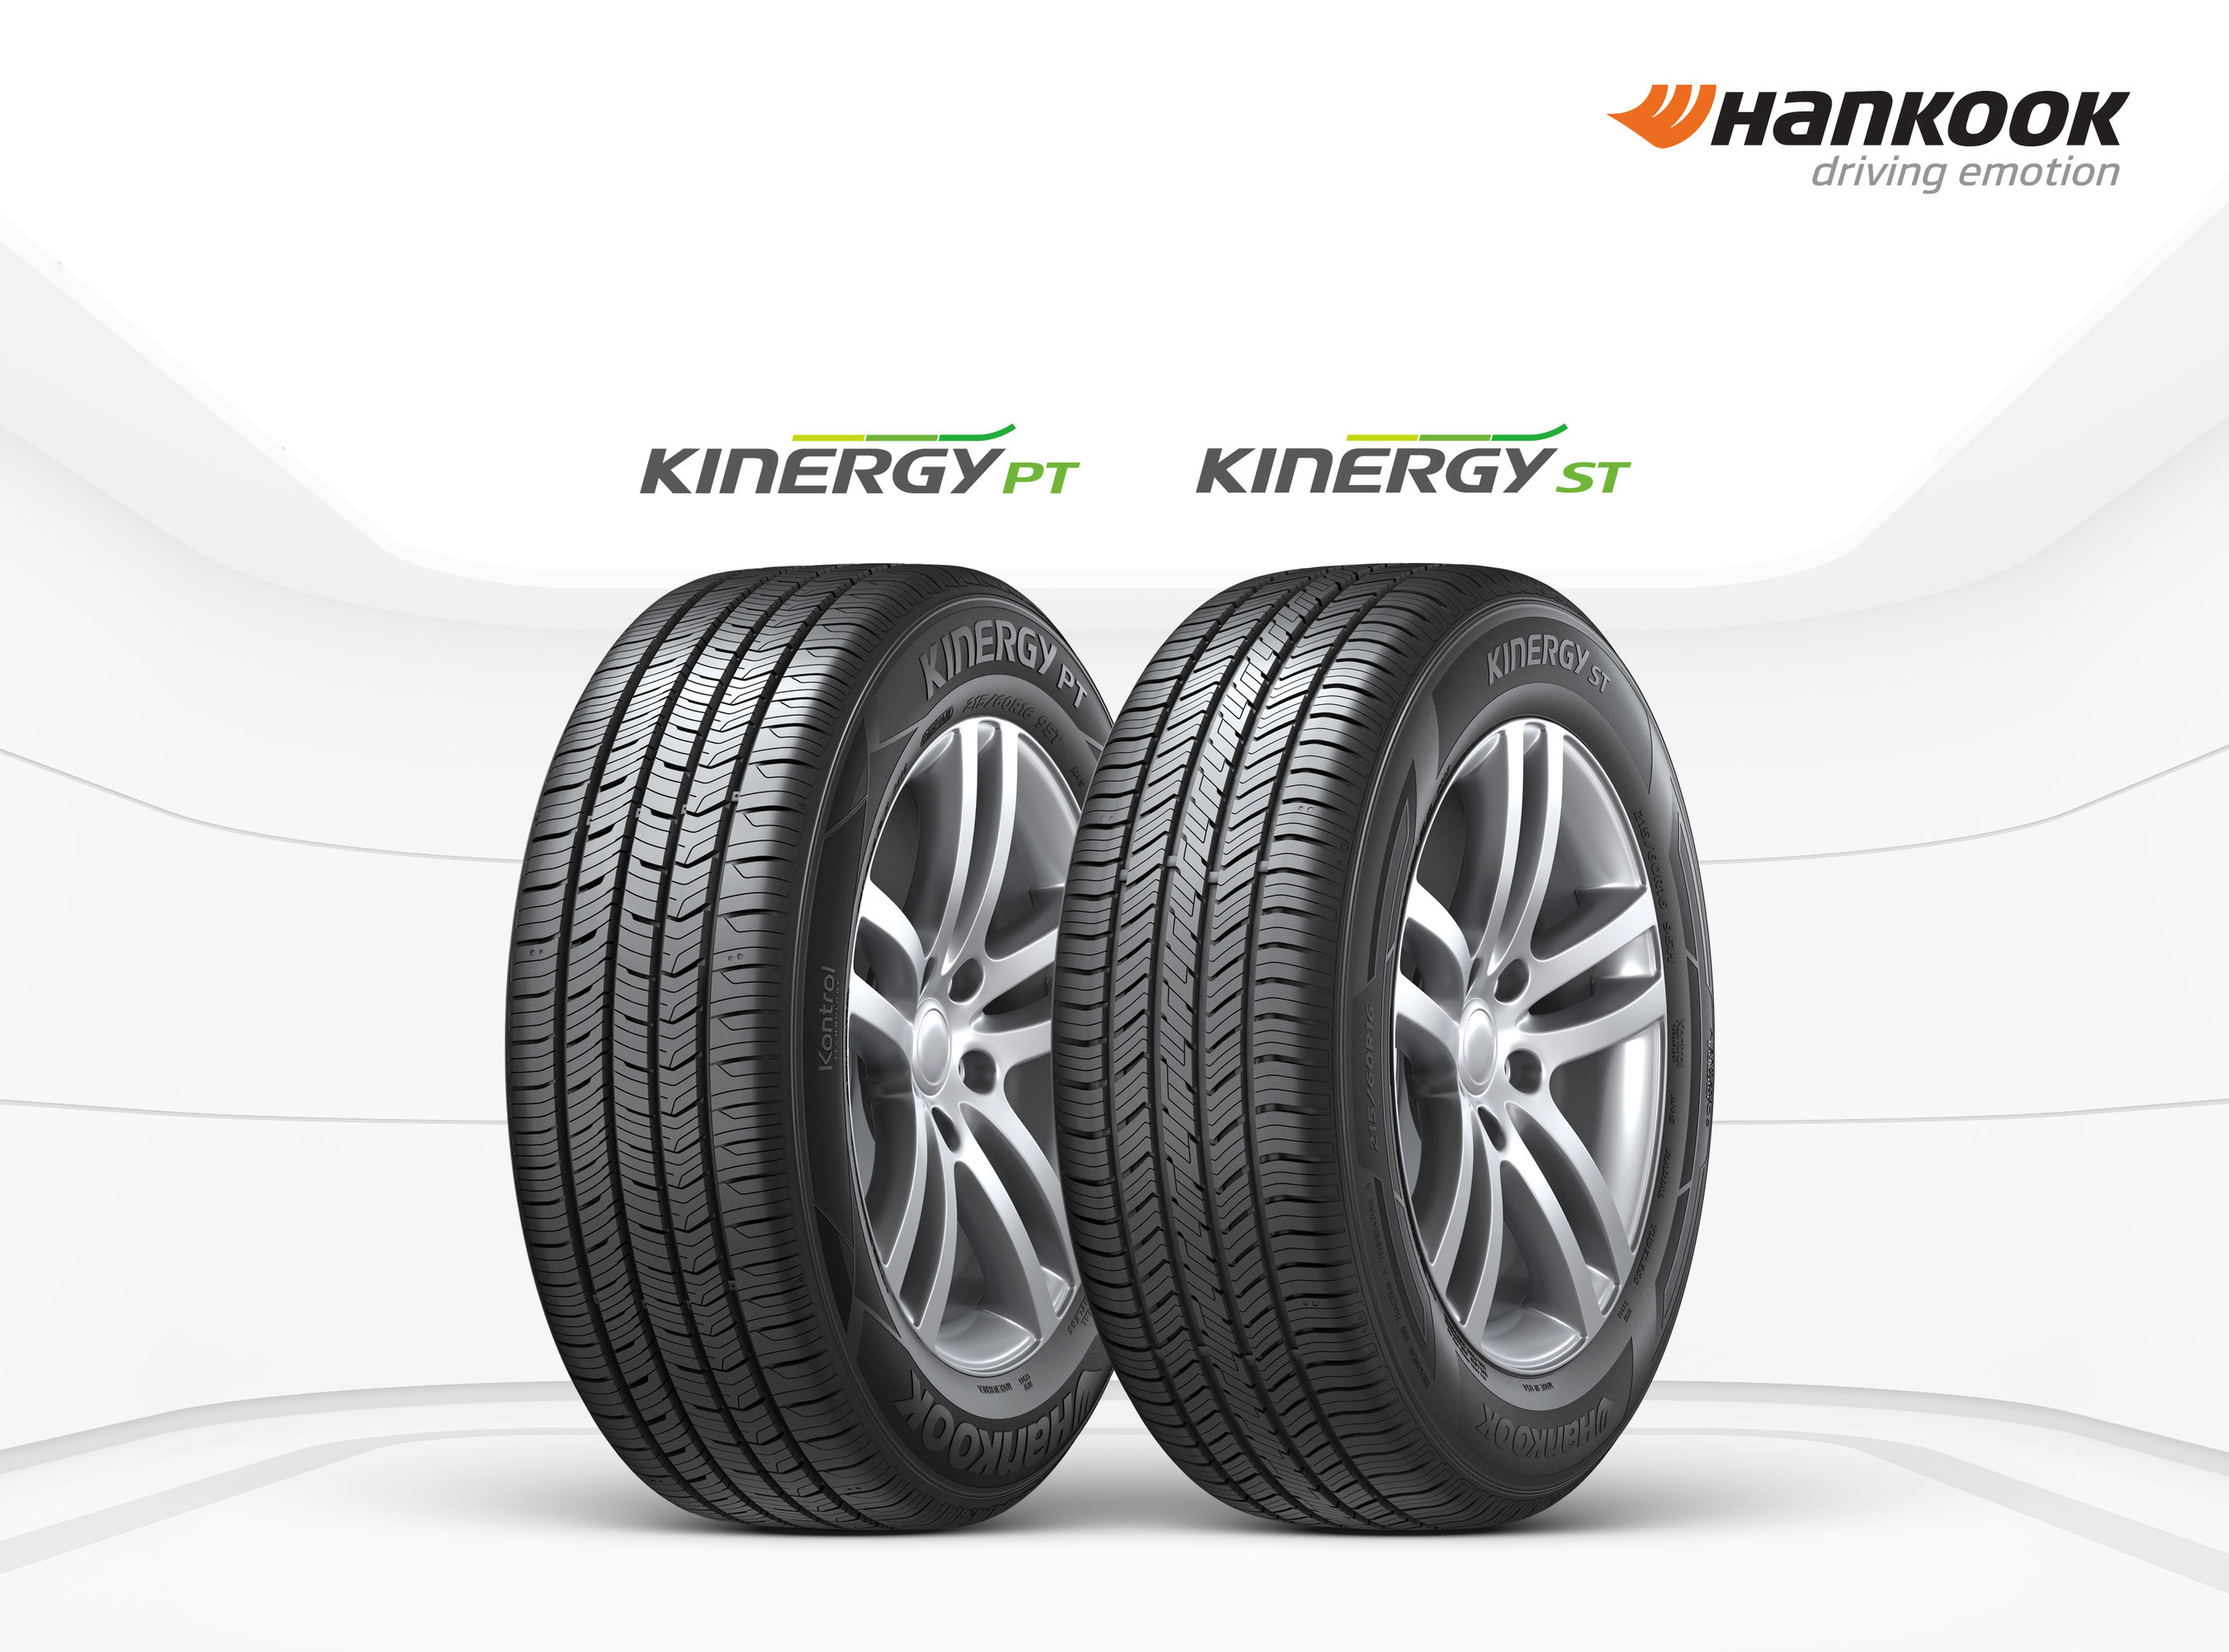 Hankook Extends Size Range of Two Kinergy Tires